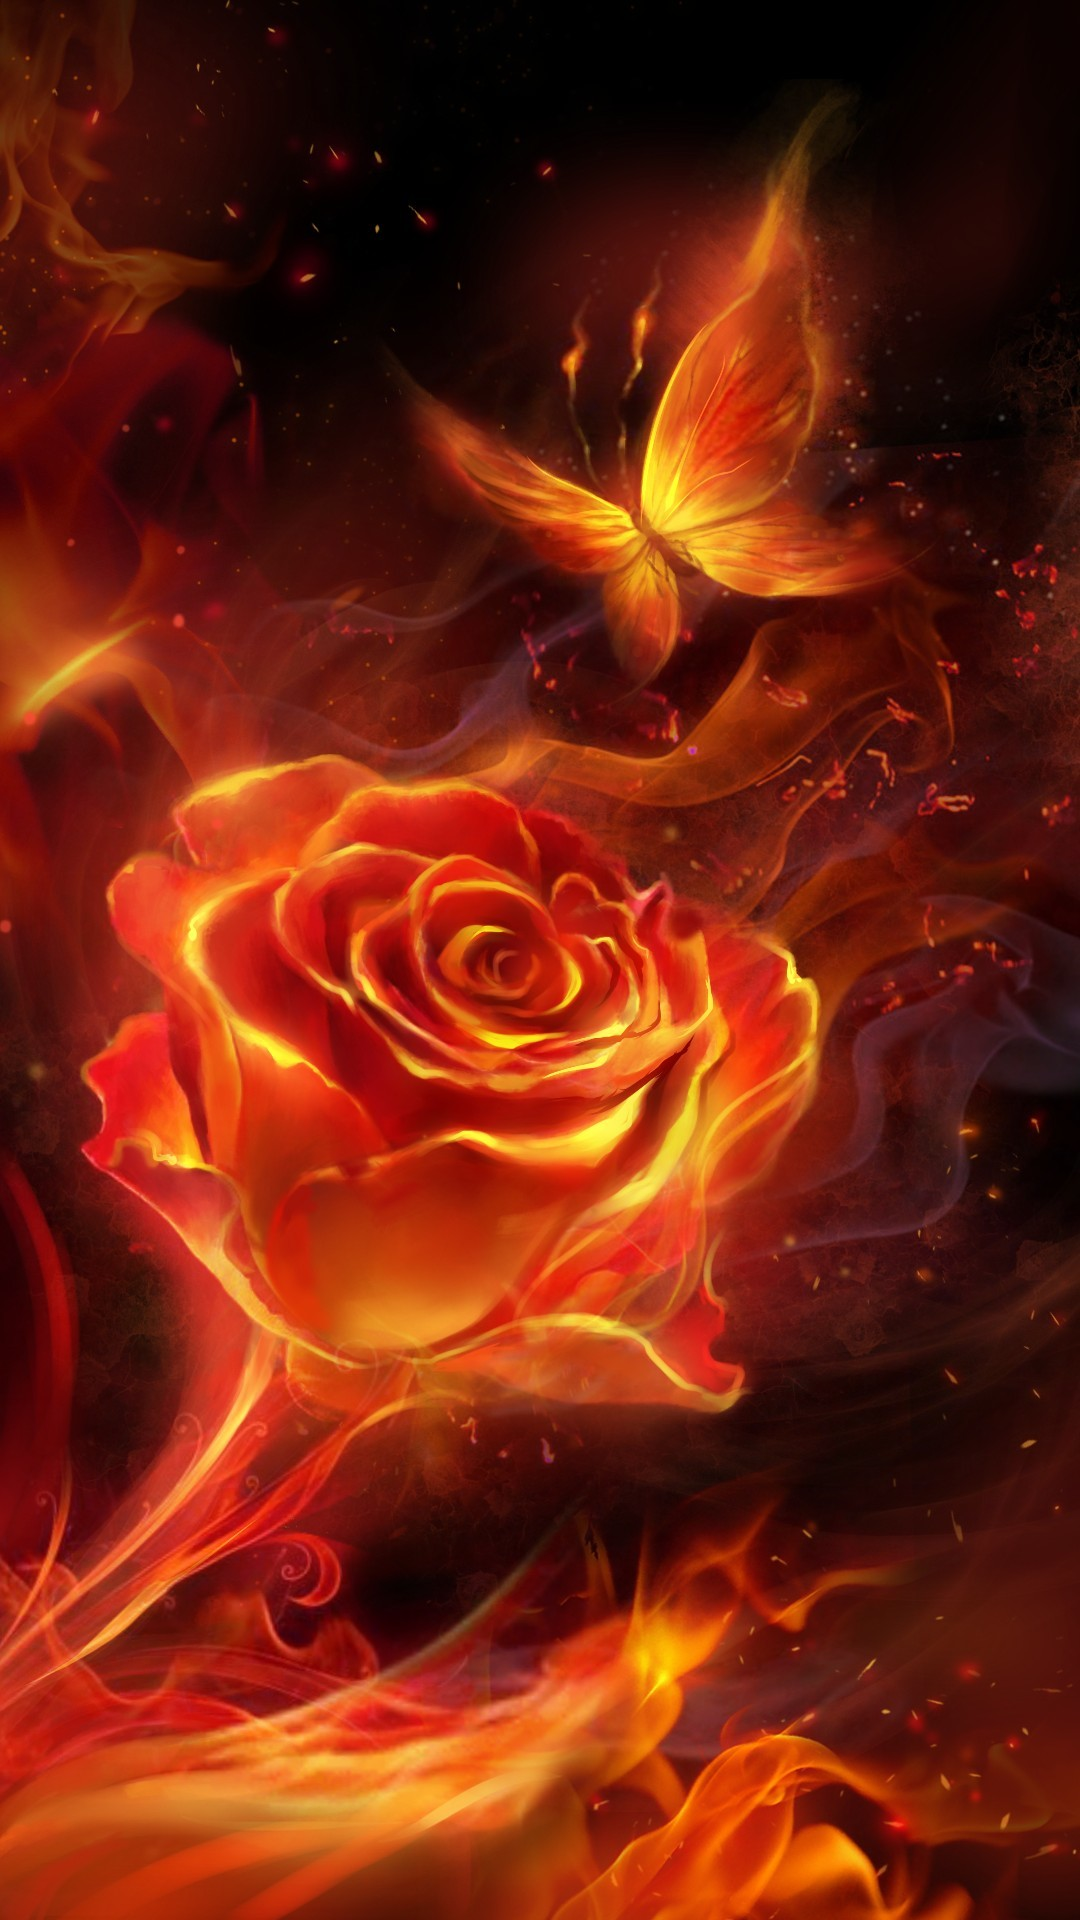 Res: 1080x1920, Red Bandana Wallpaper Awesome Fiery Rose and butterfly Flame Live Wallpaper